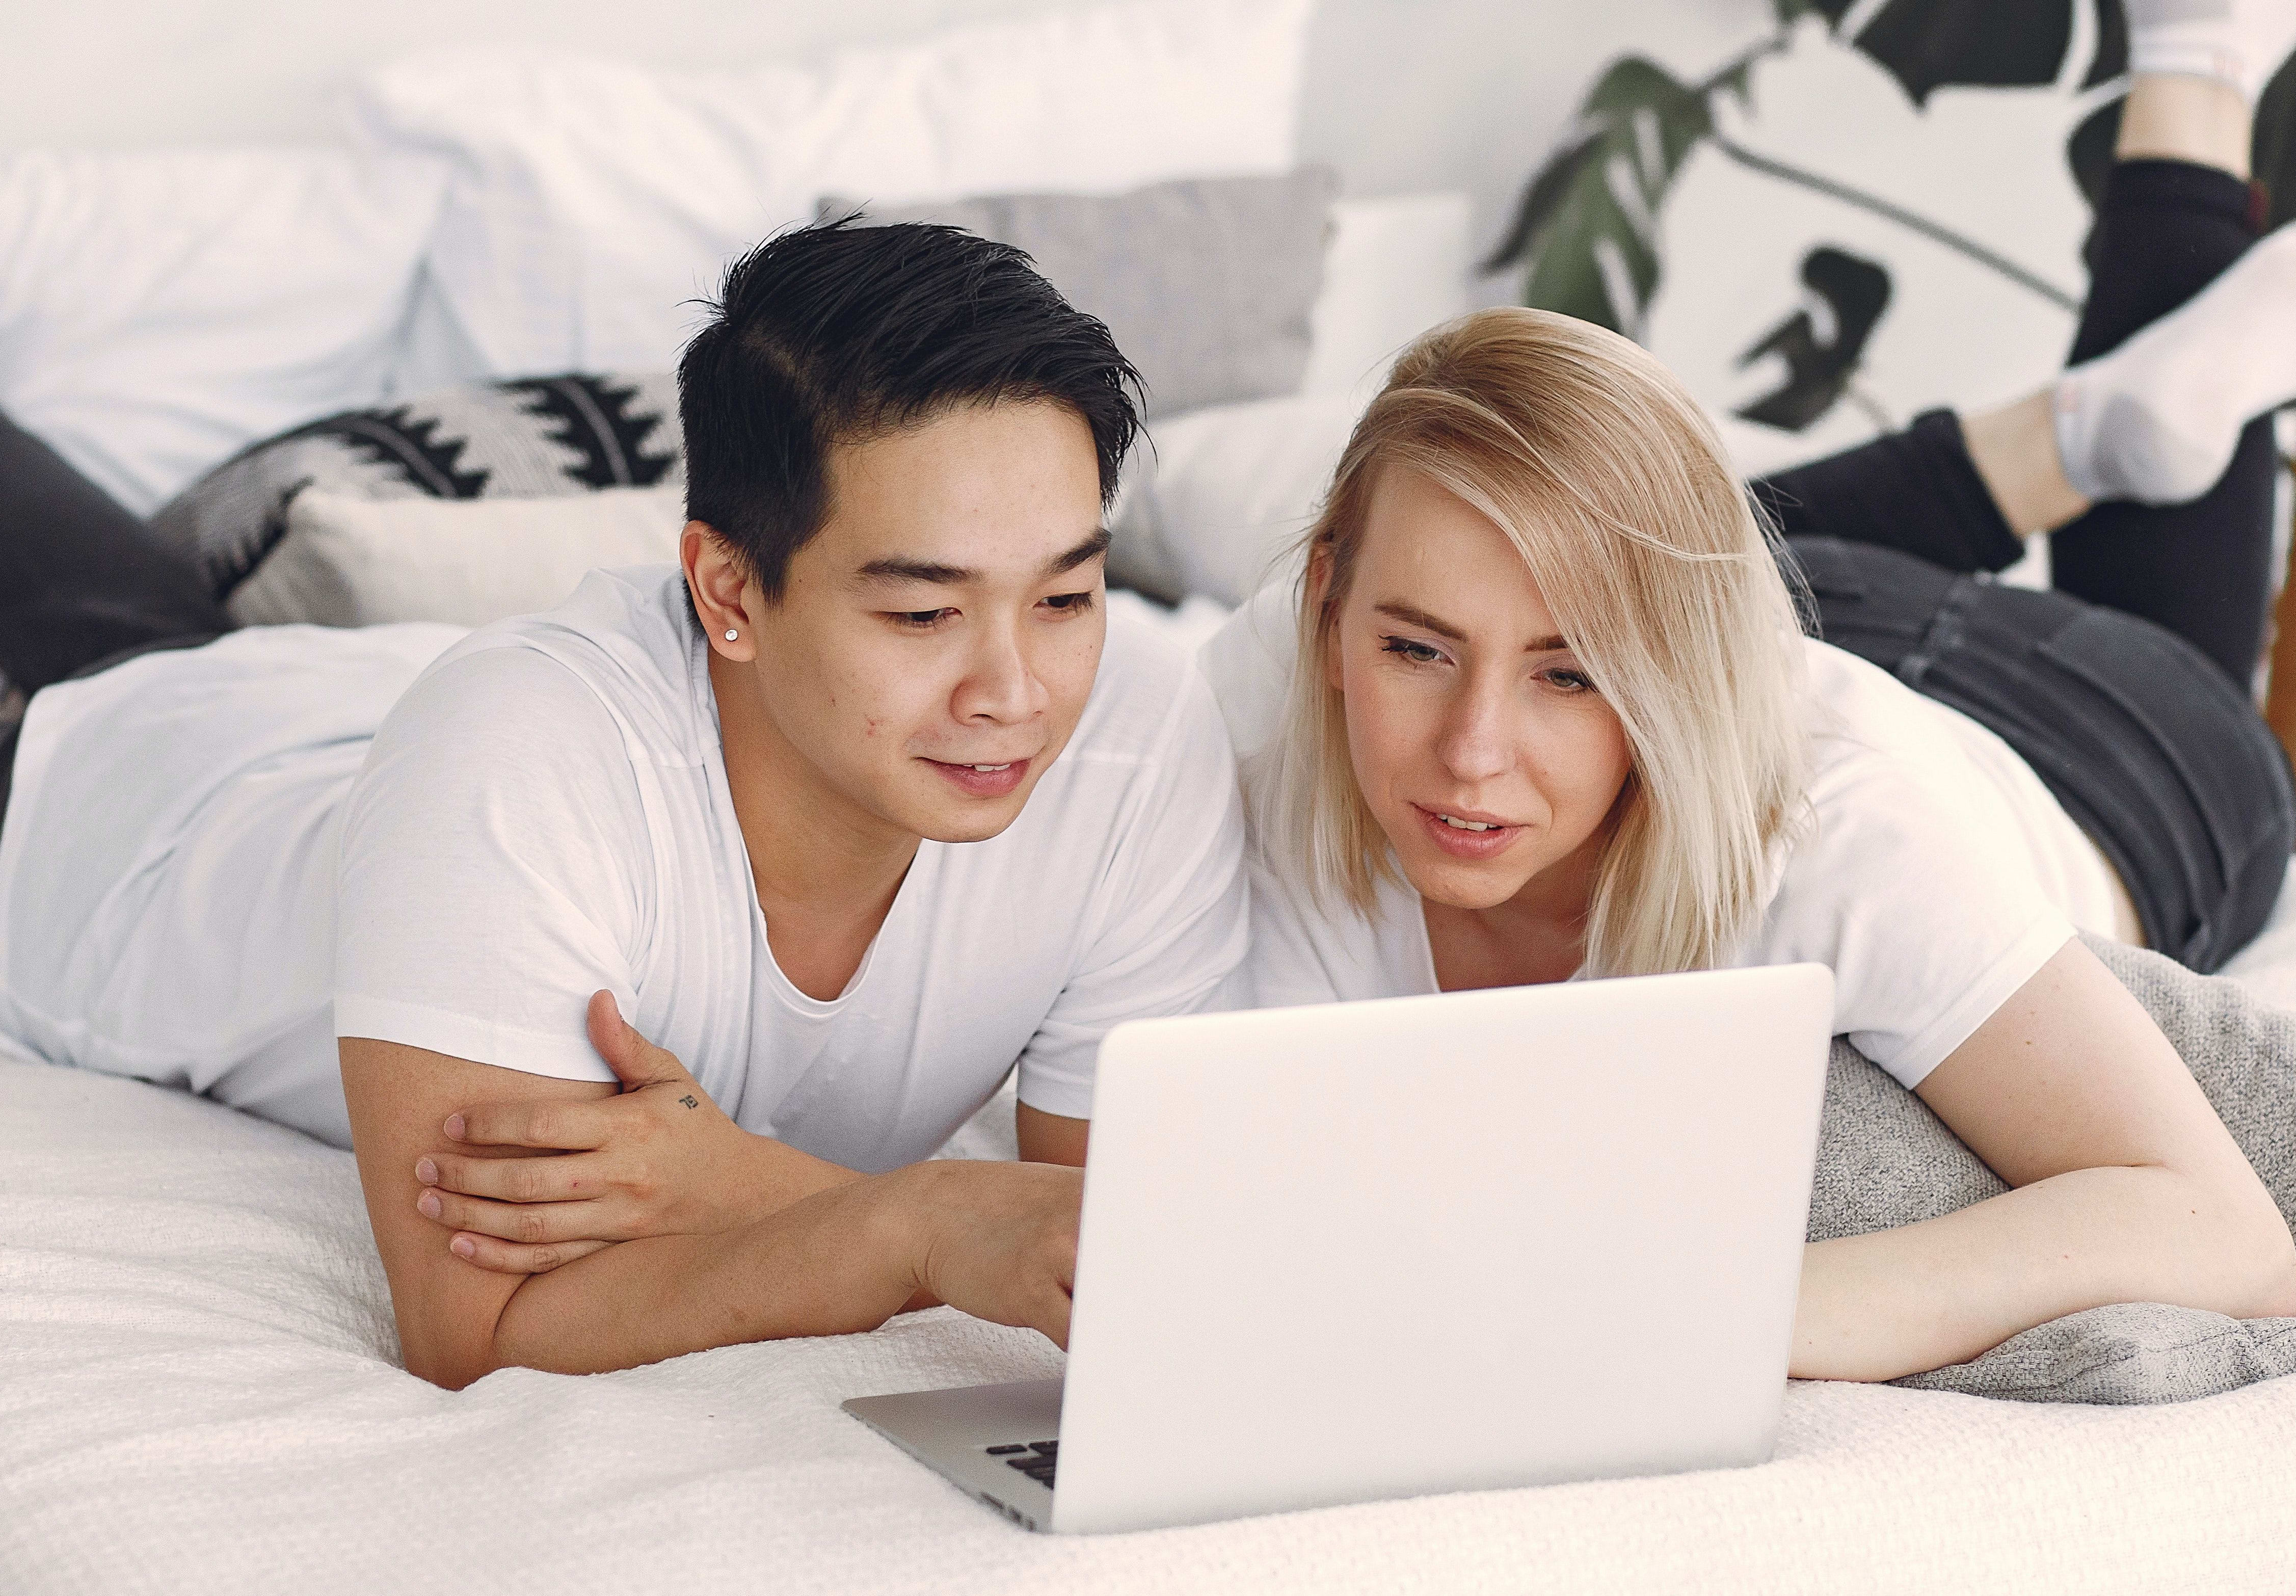 Video On Demand Is Becoming More Popular